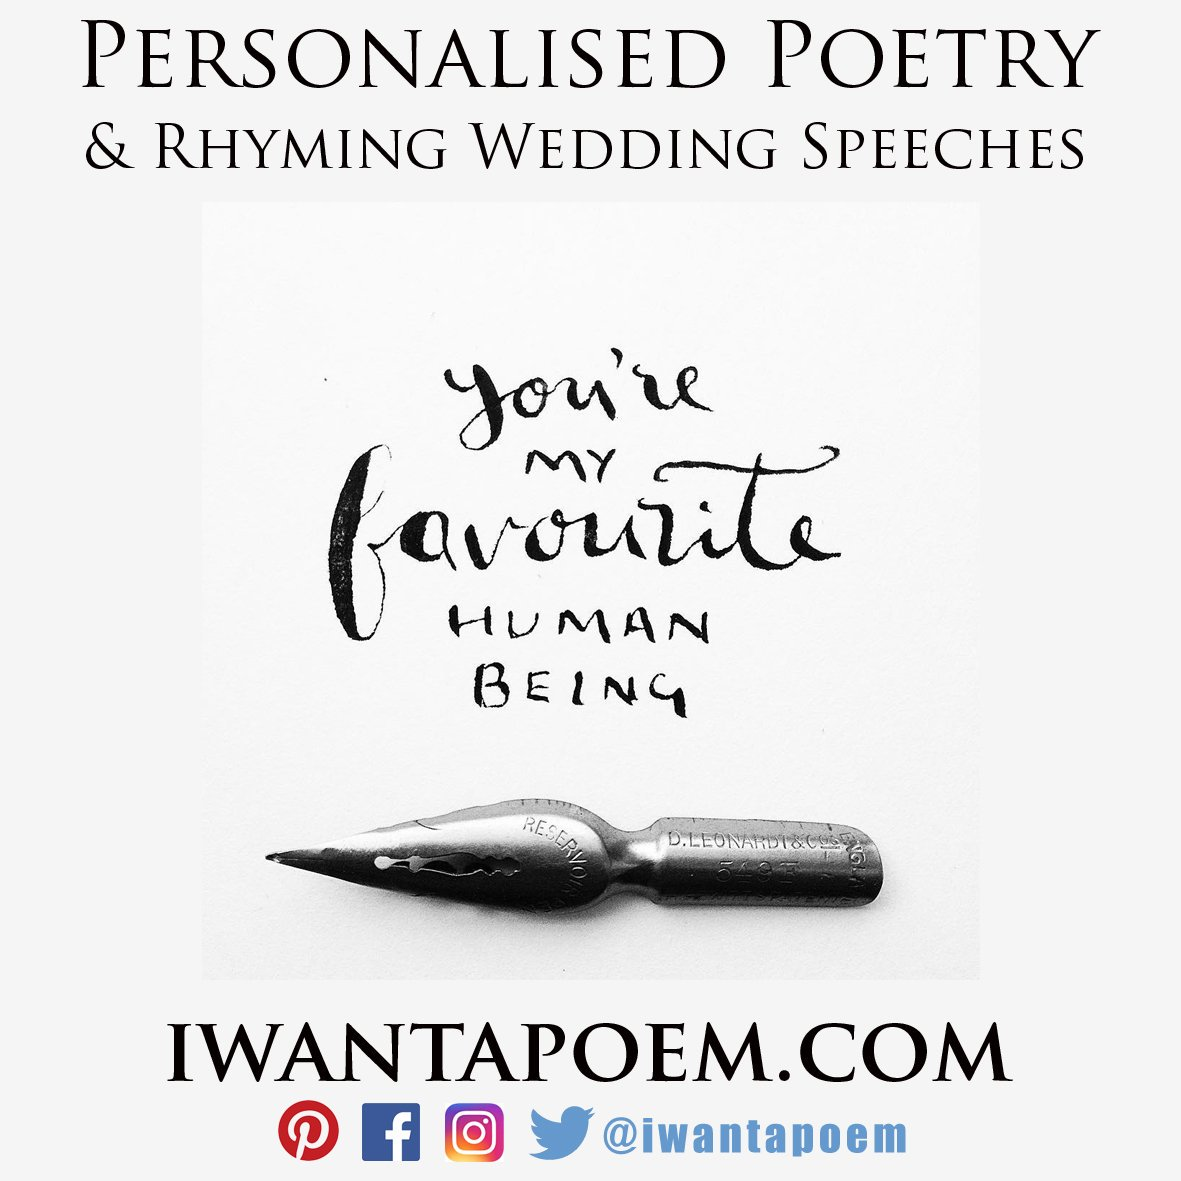 custom personalized wedding poems, readings and speeches written for you iwantapoem